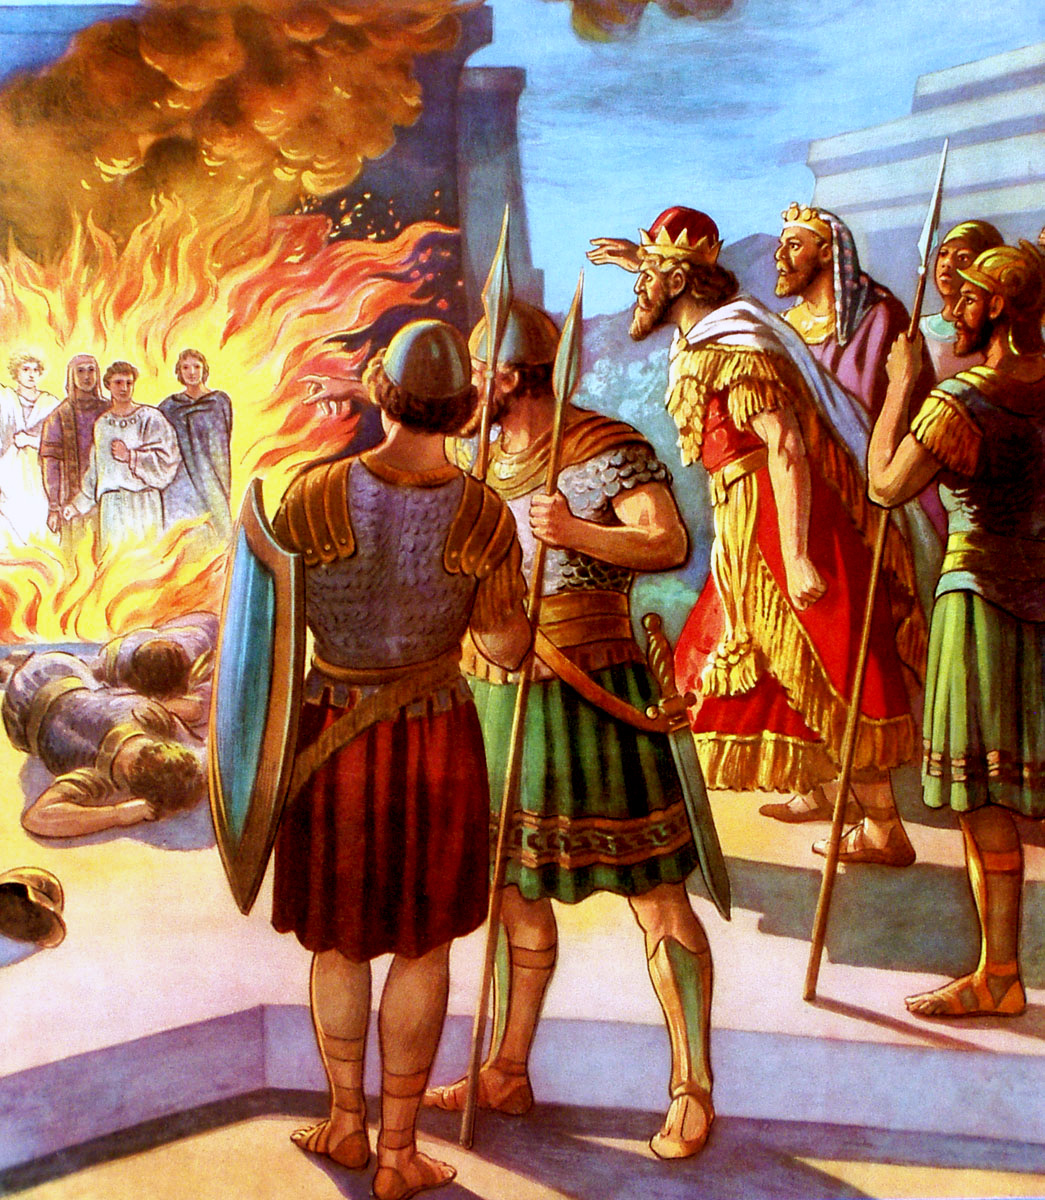 Shadrach, Meshach, and Abed-nego in the Furnace